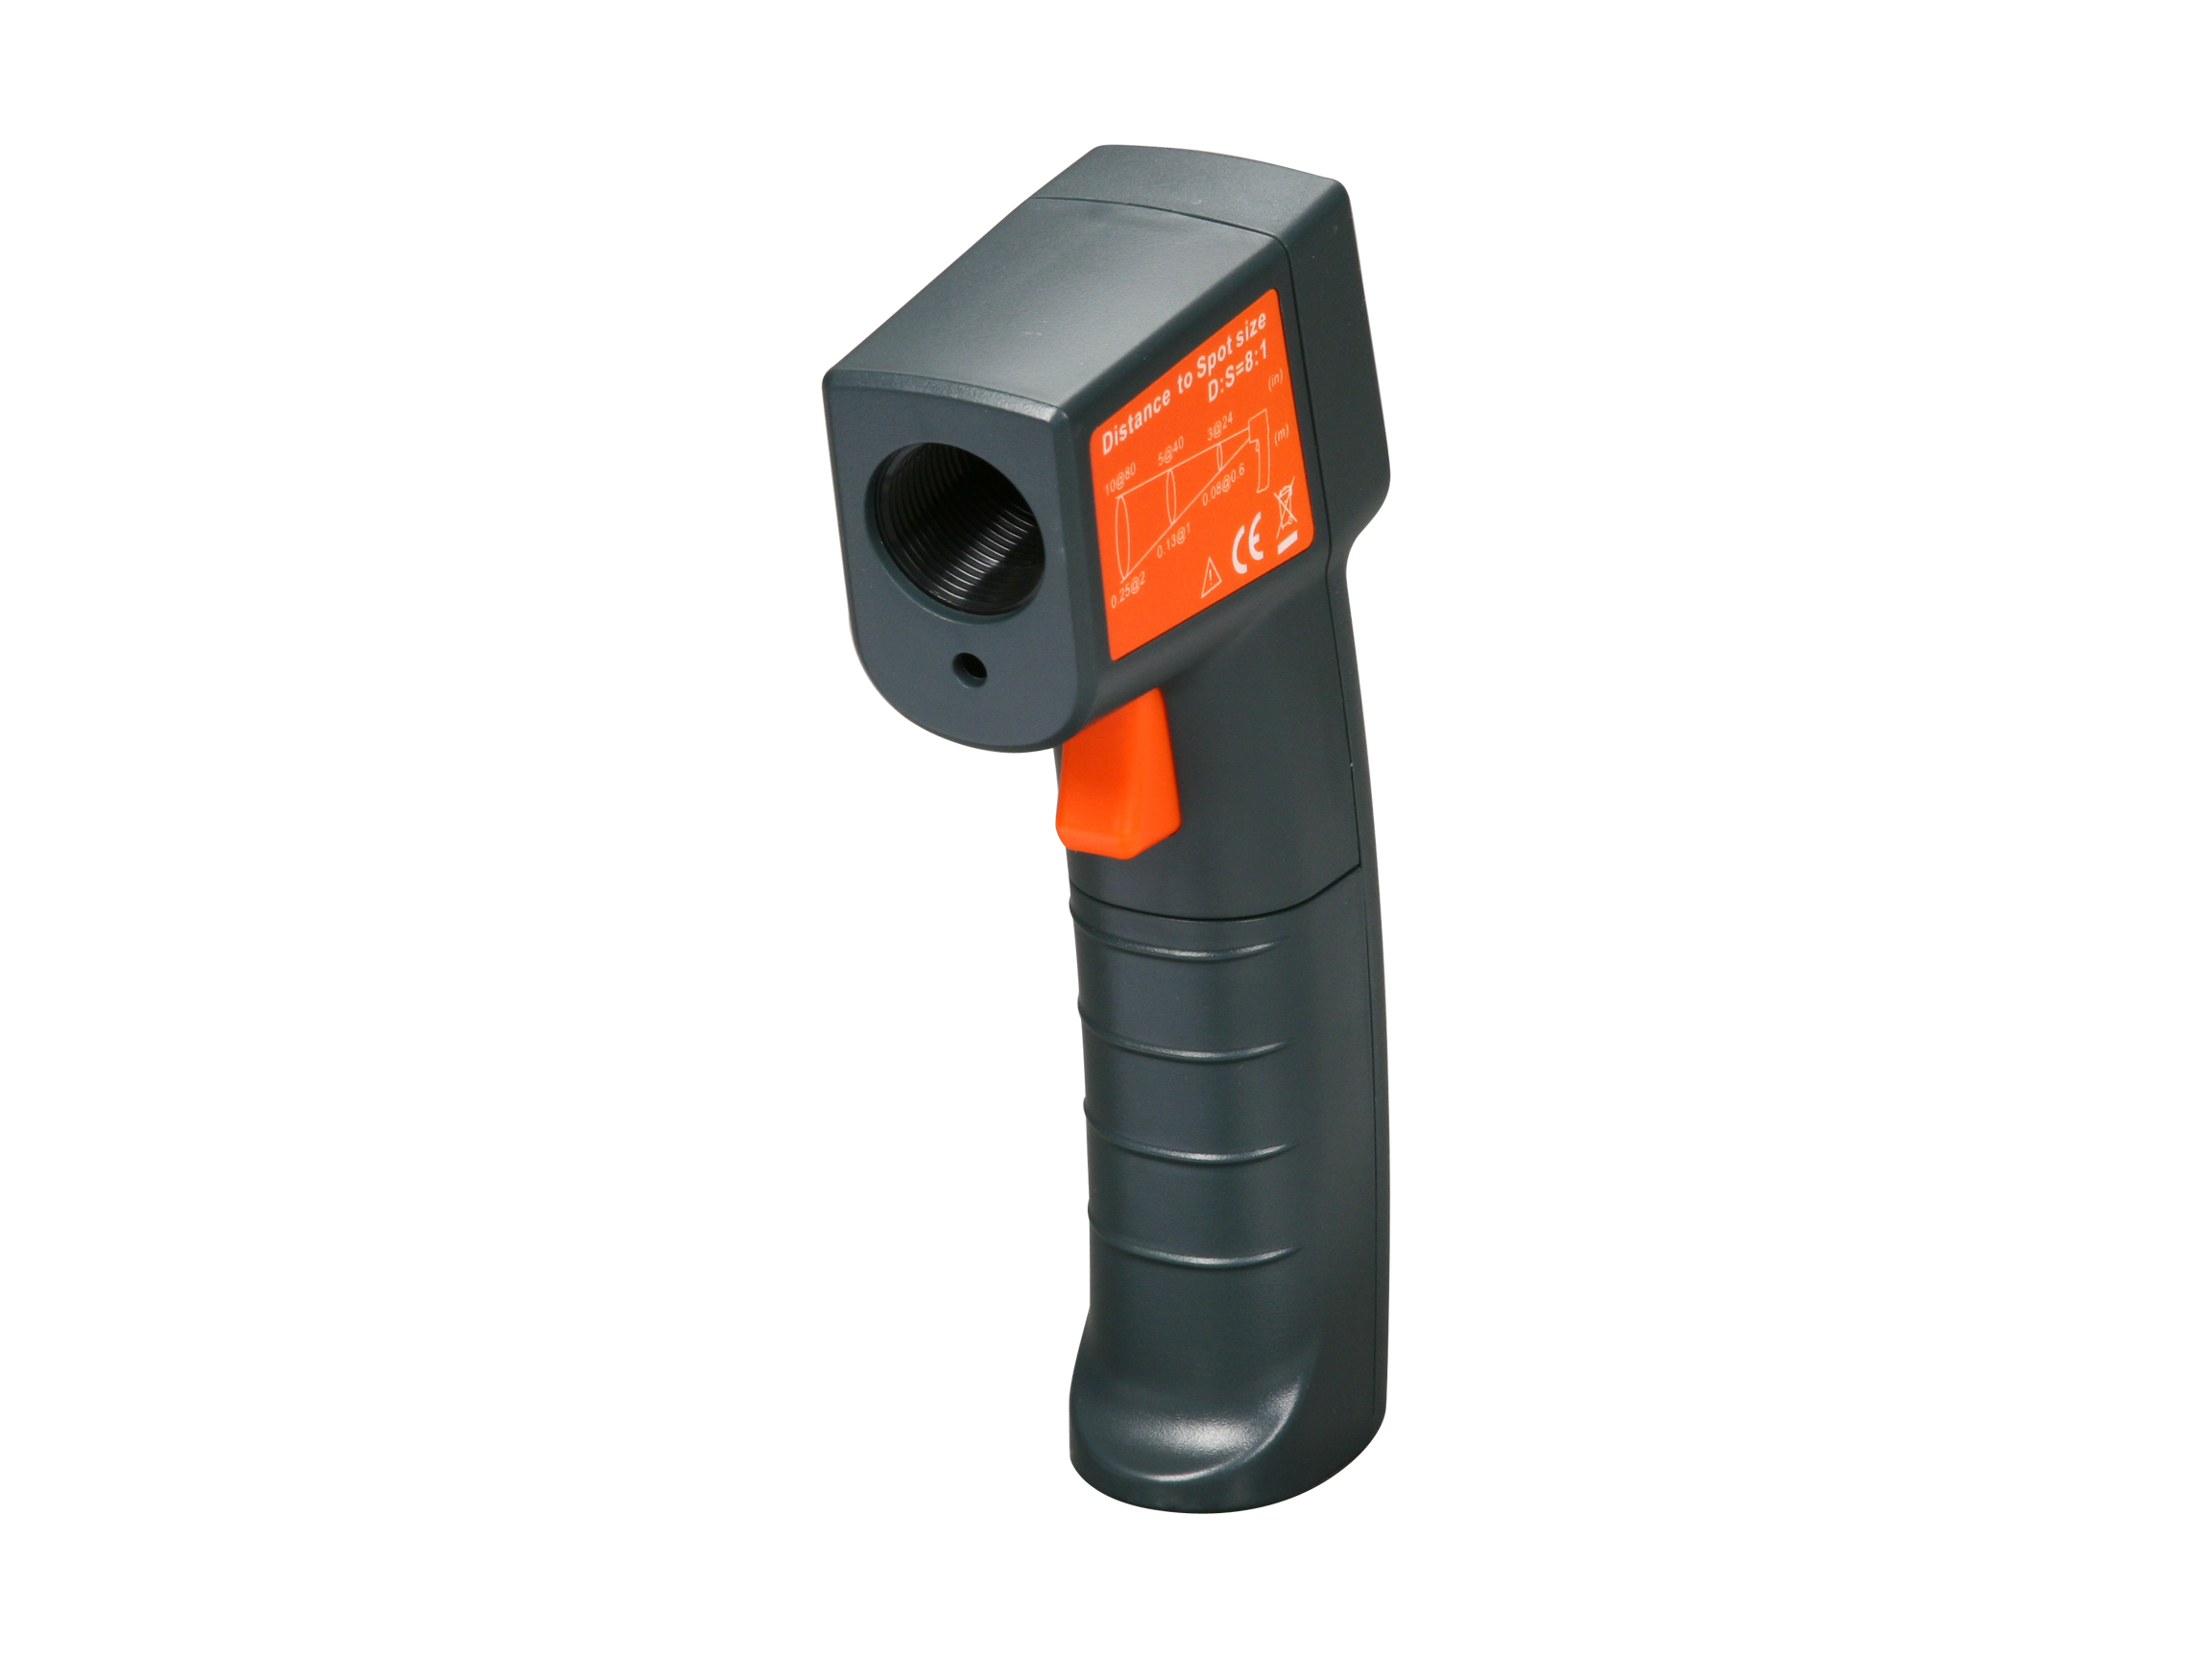 Rosewill REGD-TN439L0 Infrared Thermometer